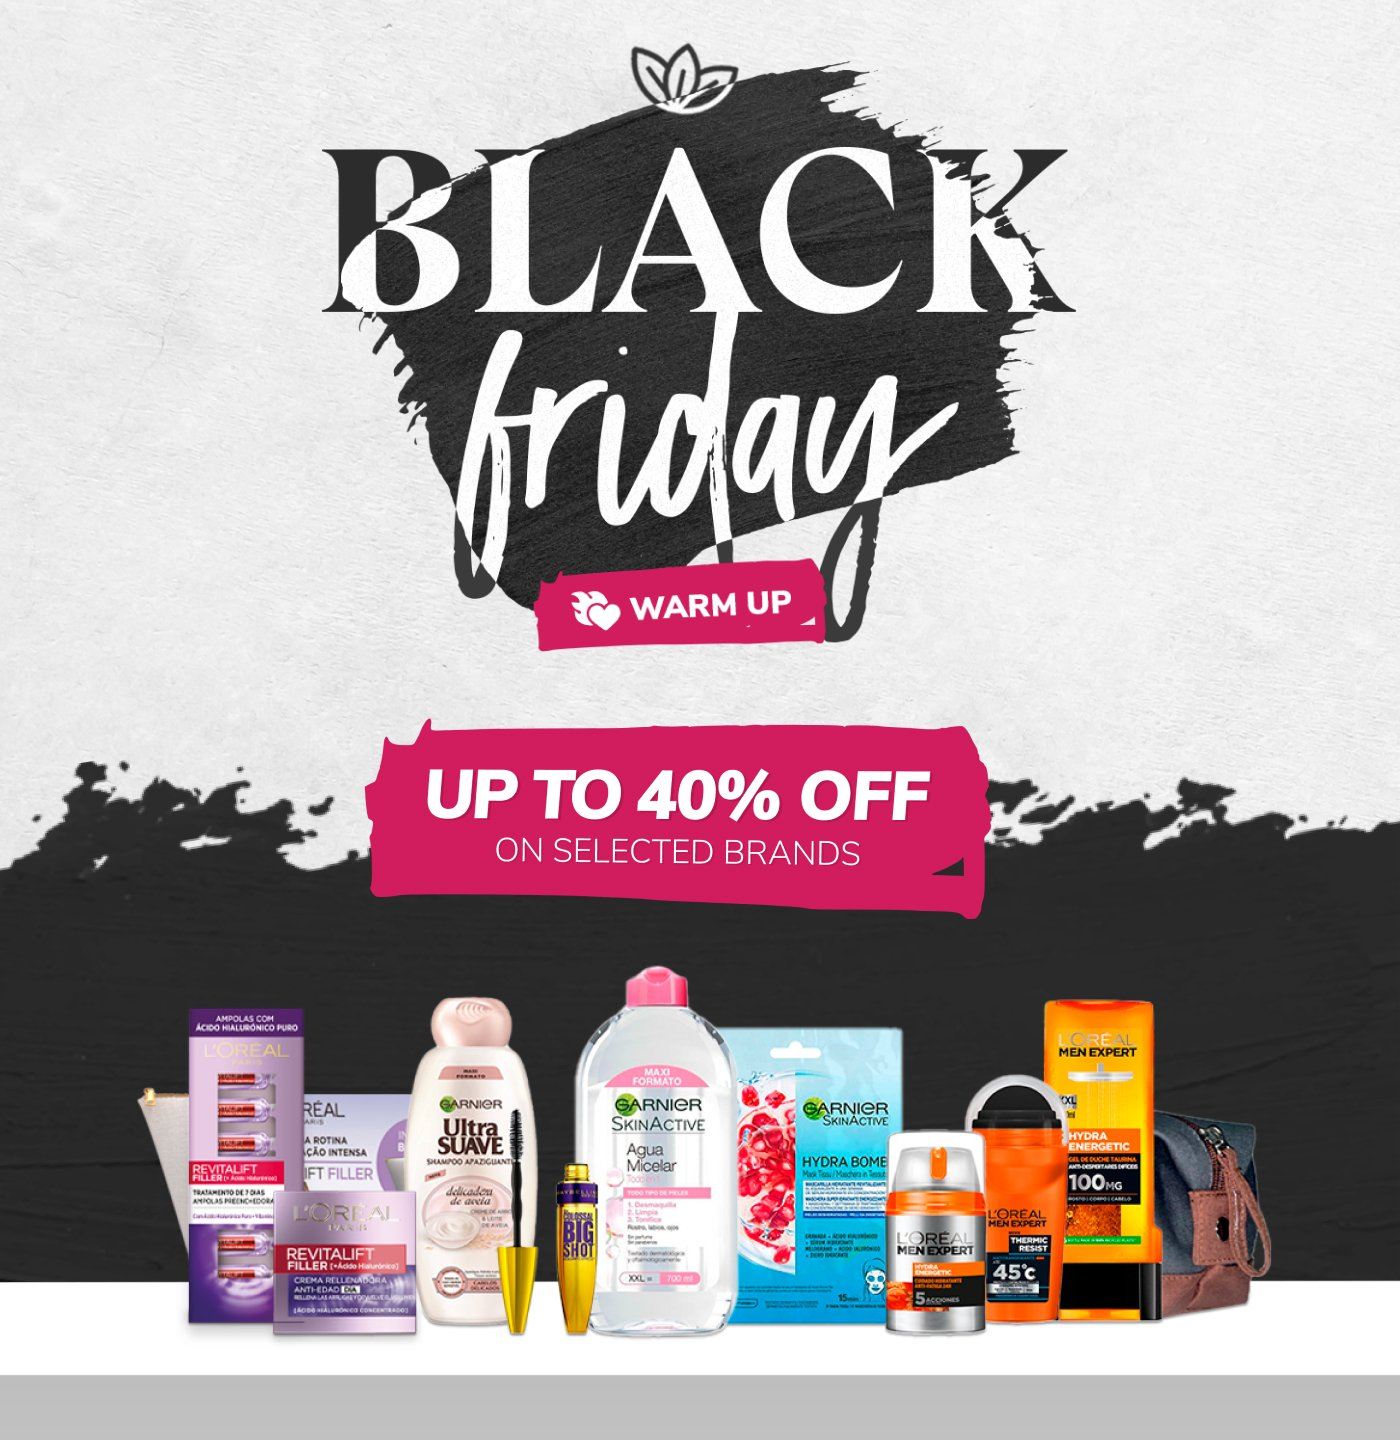 Black Friday Warm Up -  Up to 40% OFF